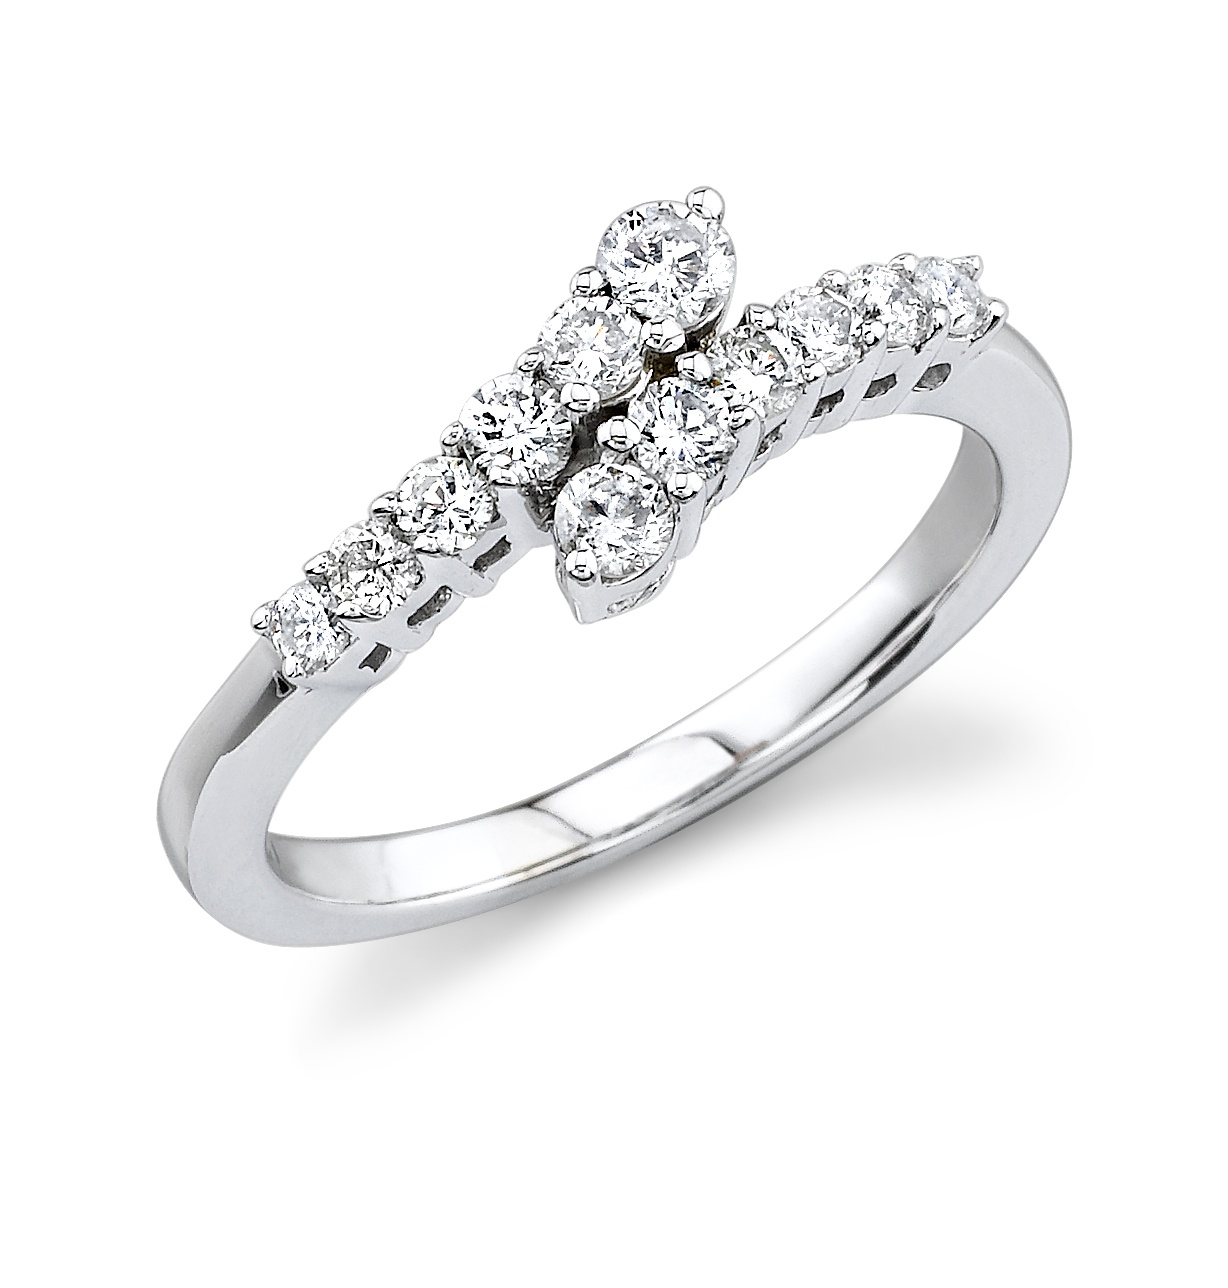 Amazing Pictures 4 You Diamond Rings Effect. Super Simple Wedding Rings. Square Setting Engagement Rings. Industrial Wedding Rings. Exhaust Rings. Simplistic Engagement Rings. .75 Carat Engagement Rings. Power Rings. Pretty Wedding Wedding Rings